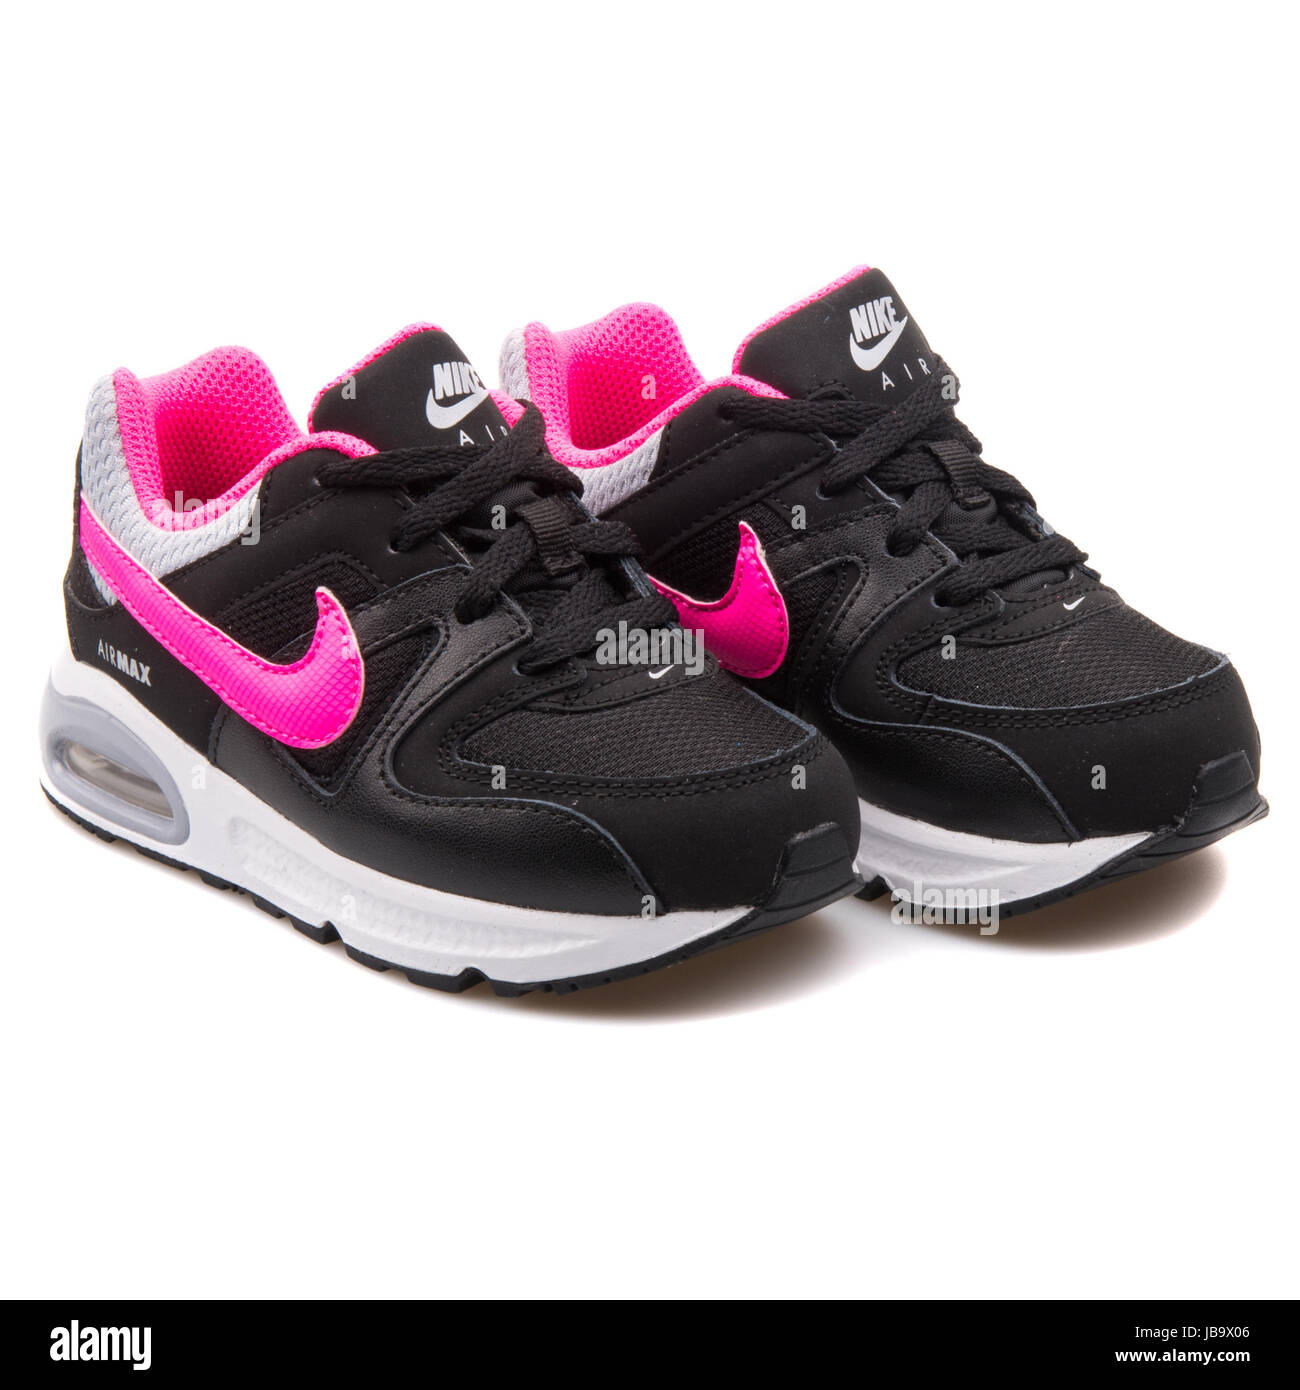 ae82994e78 Nike Air Max Command (TD) Black and Pink Kids Sports Sneakers - 412232-065